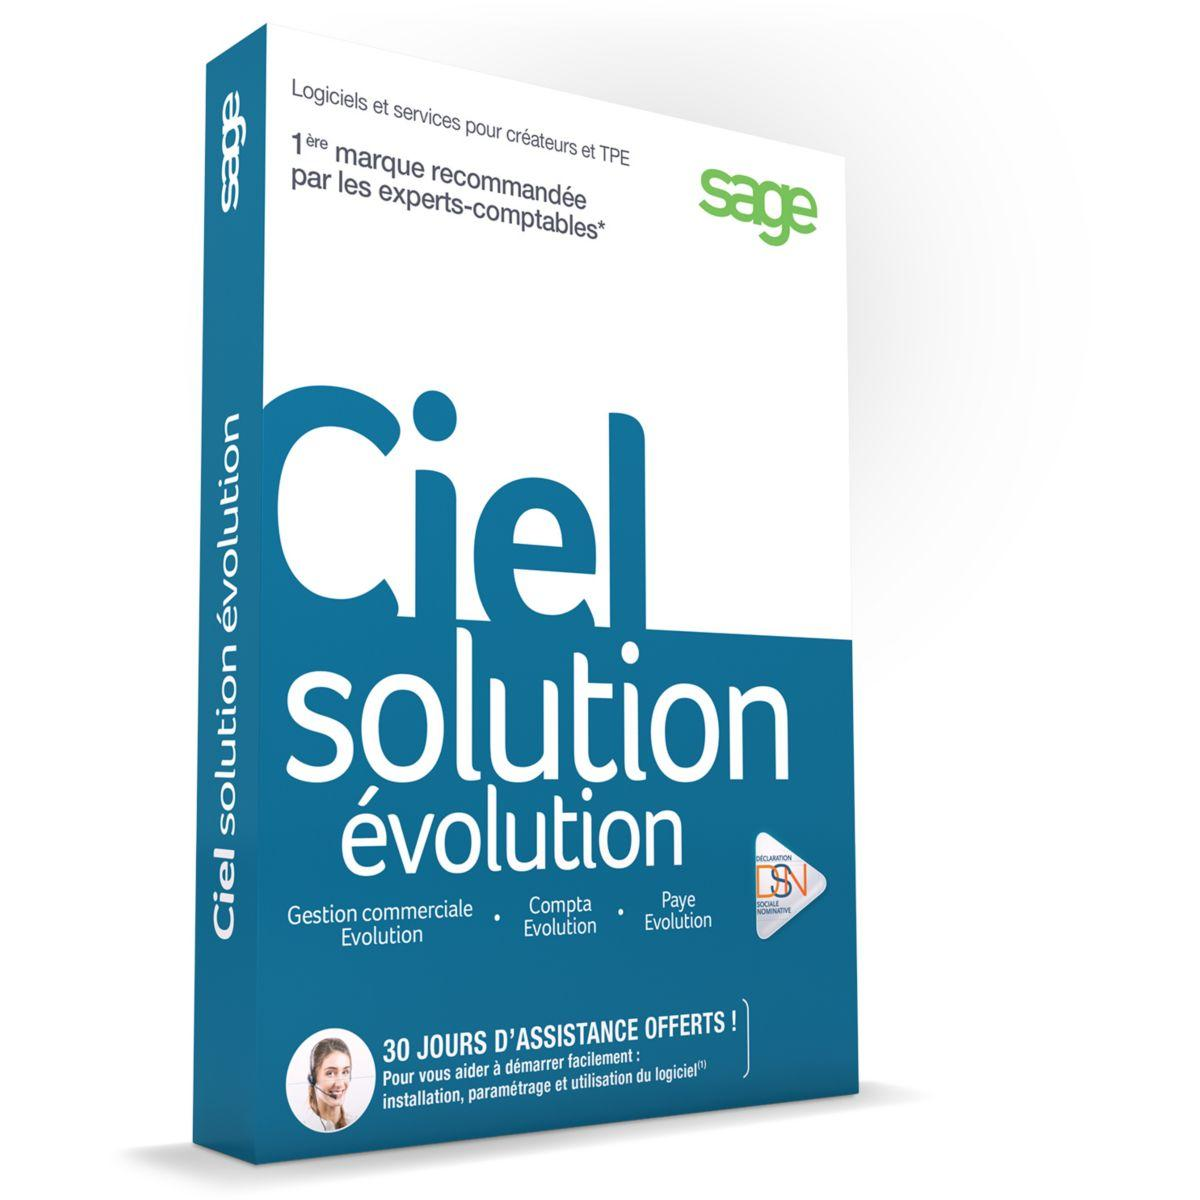 Logiciel pc ciel solution evolution (photo)